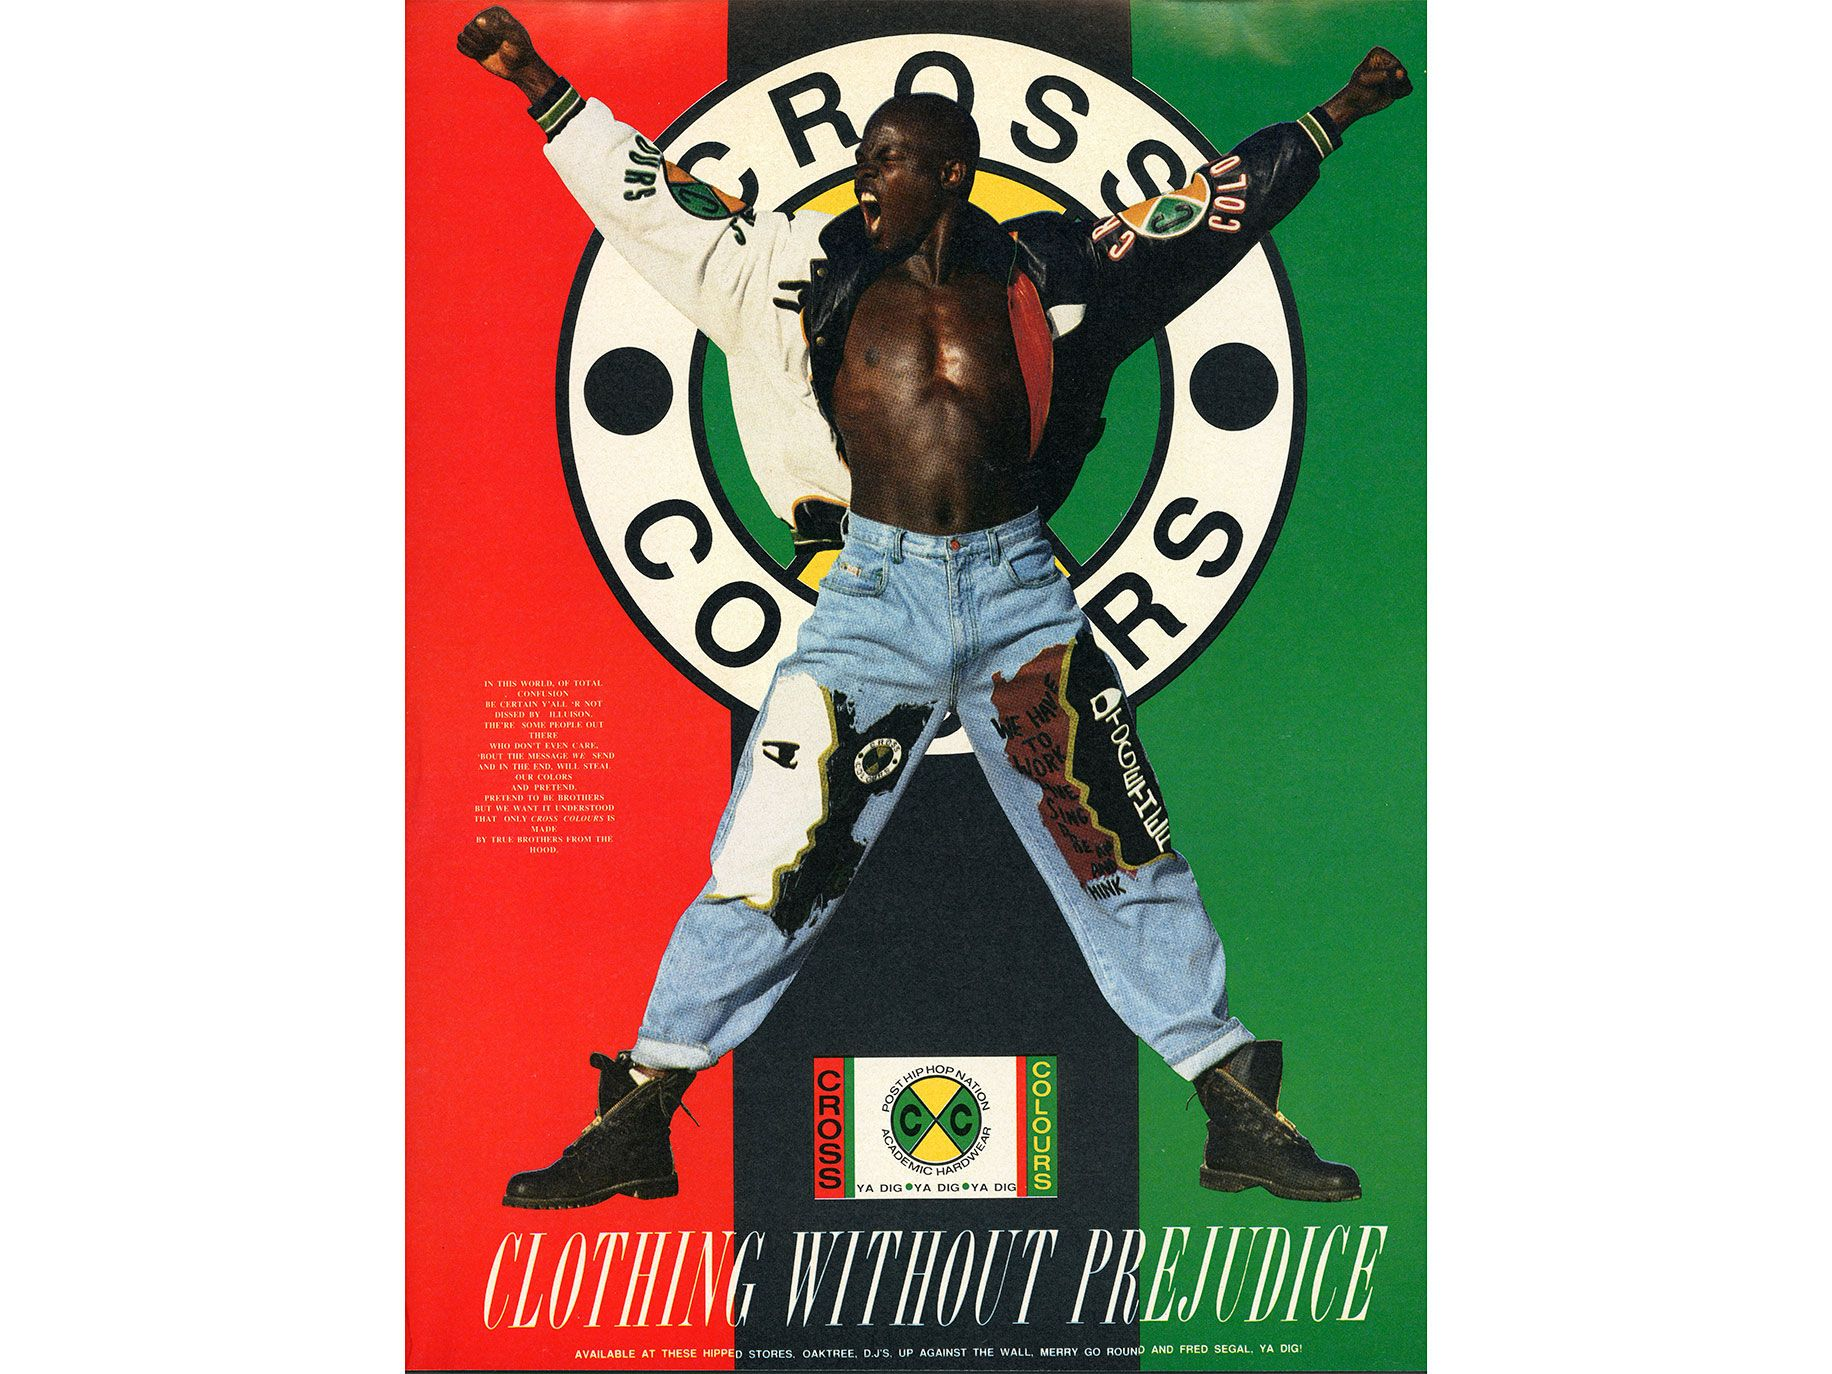 Djimon Hounsou poses in a Cross Colours ad that ran in a 1991 issue of Urb magazine.